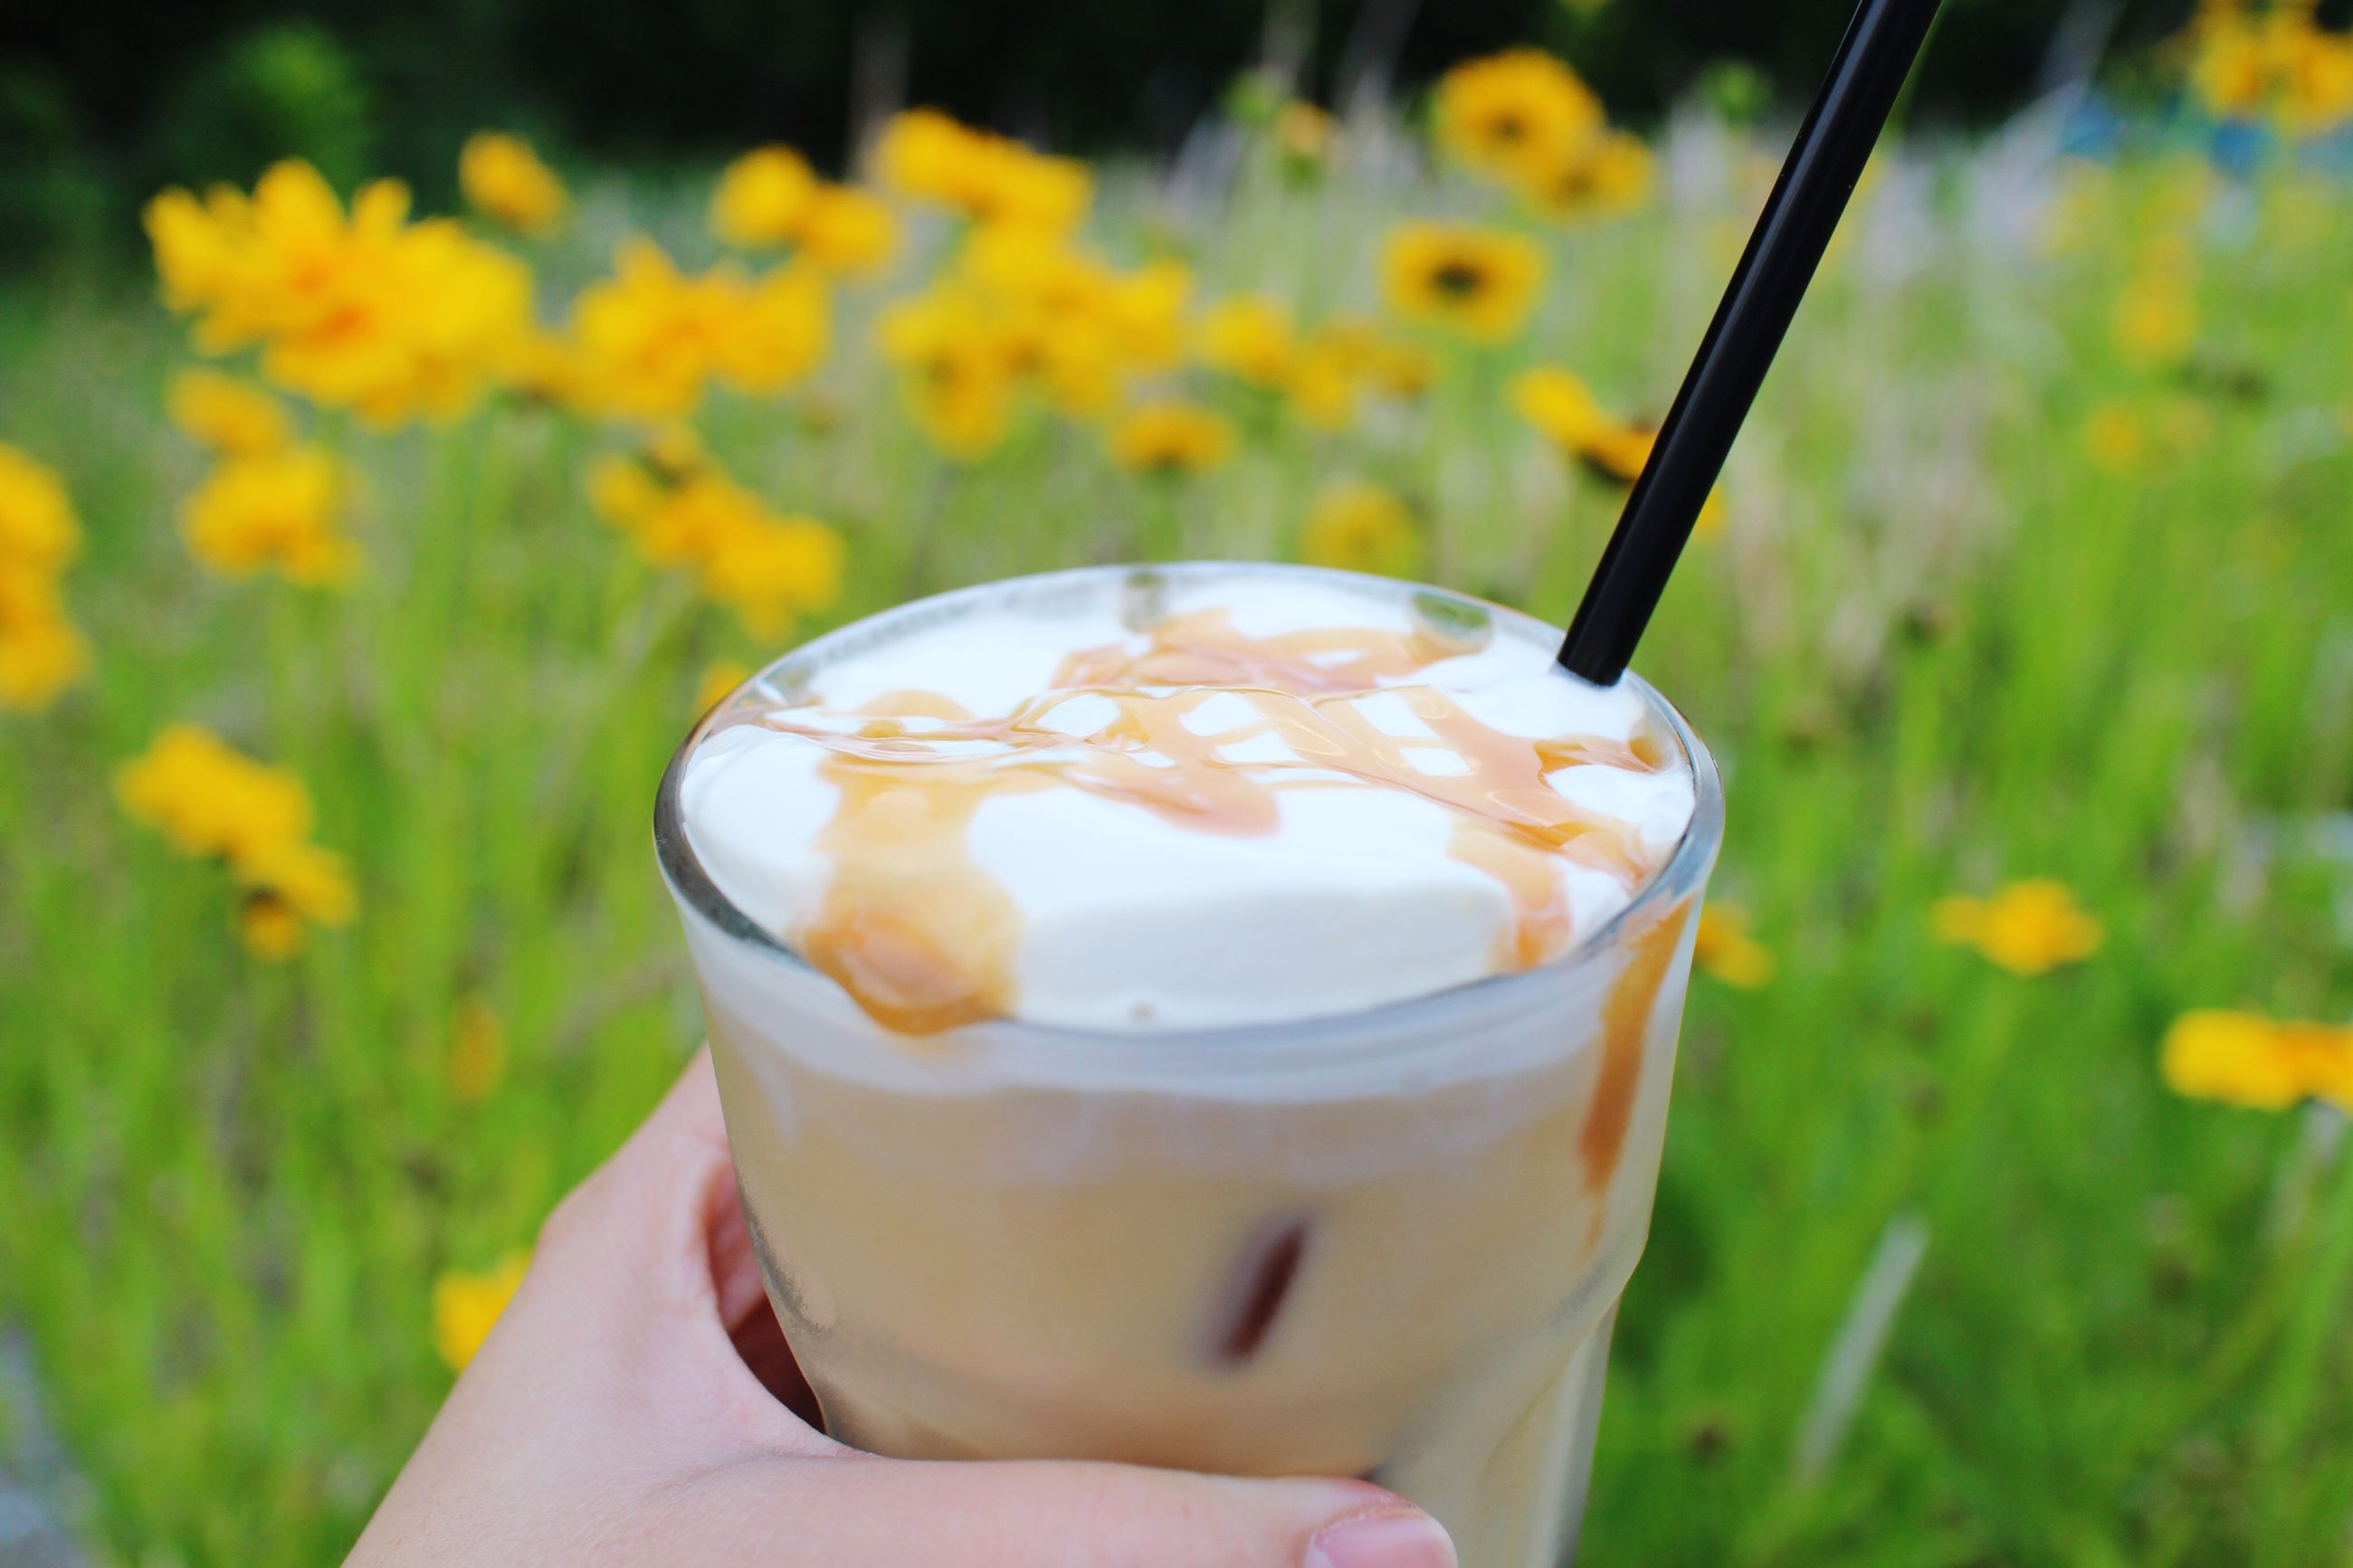 human hand, human body part, drink, sweet food, food and drink, one person, holding, refreshment, close-up, real people, disposable cup, ice cream, freshness, day, iced coffee, drinking straw, frozen food, outdoors, temptation, dessert, grass